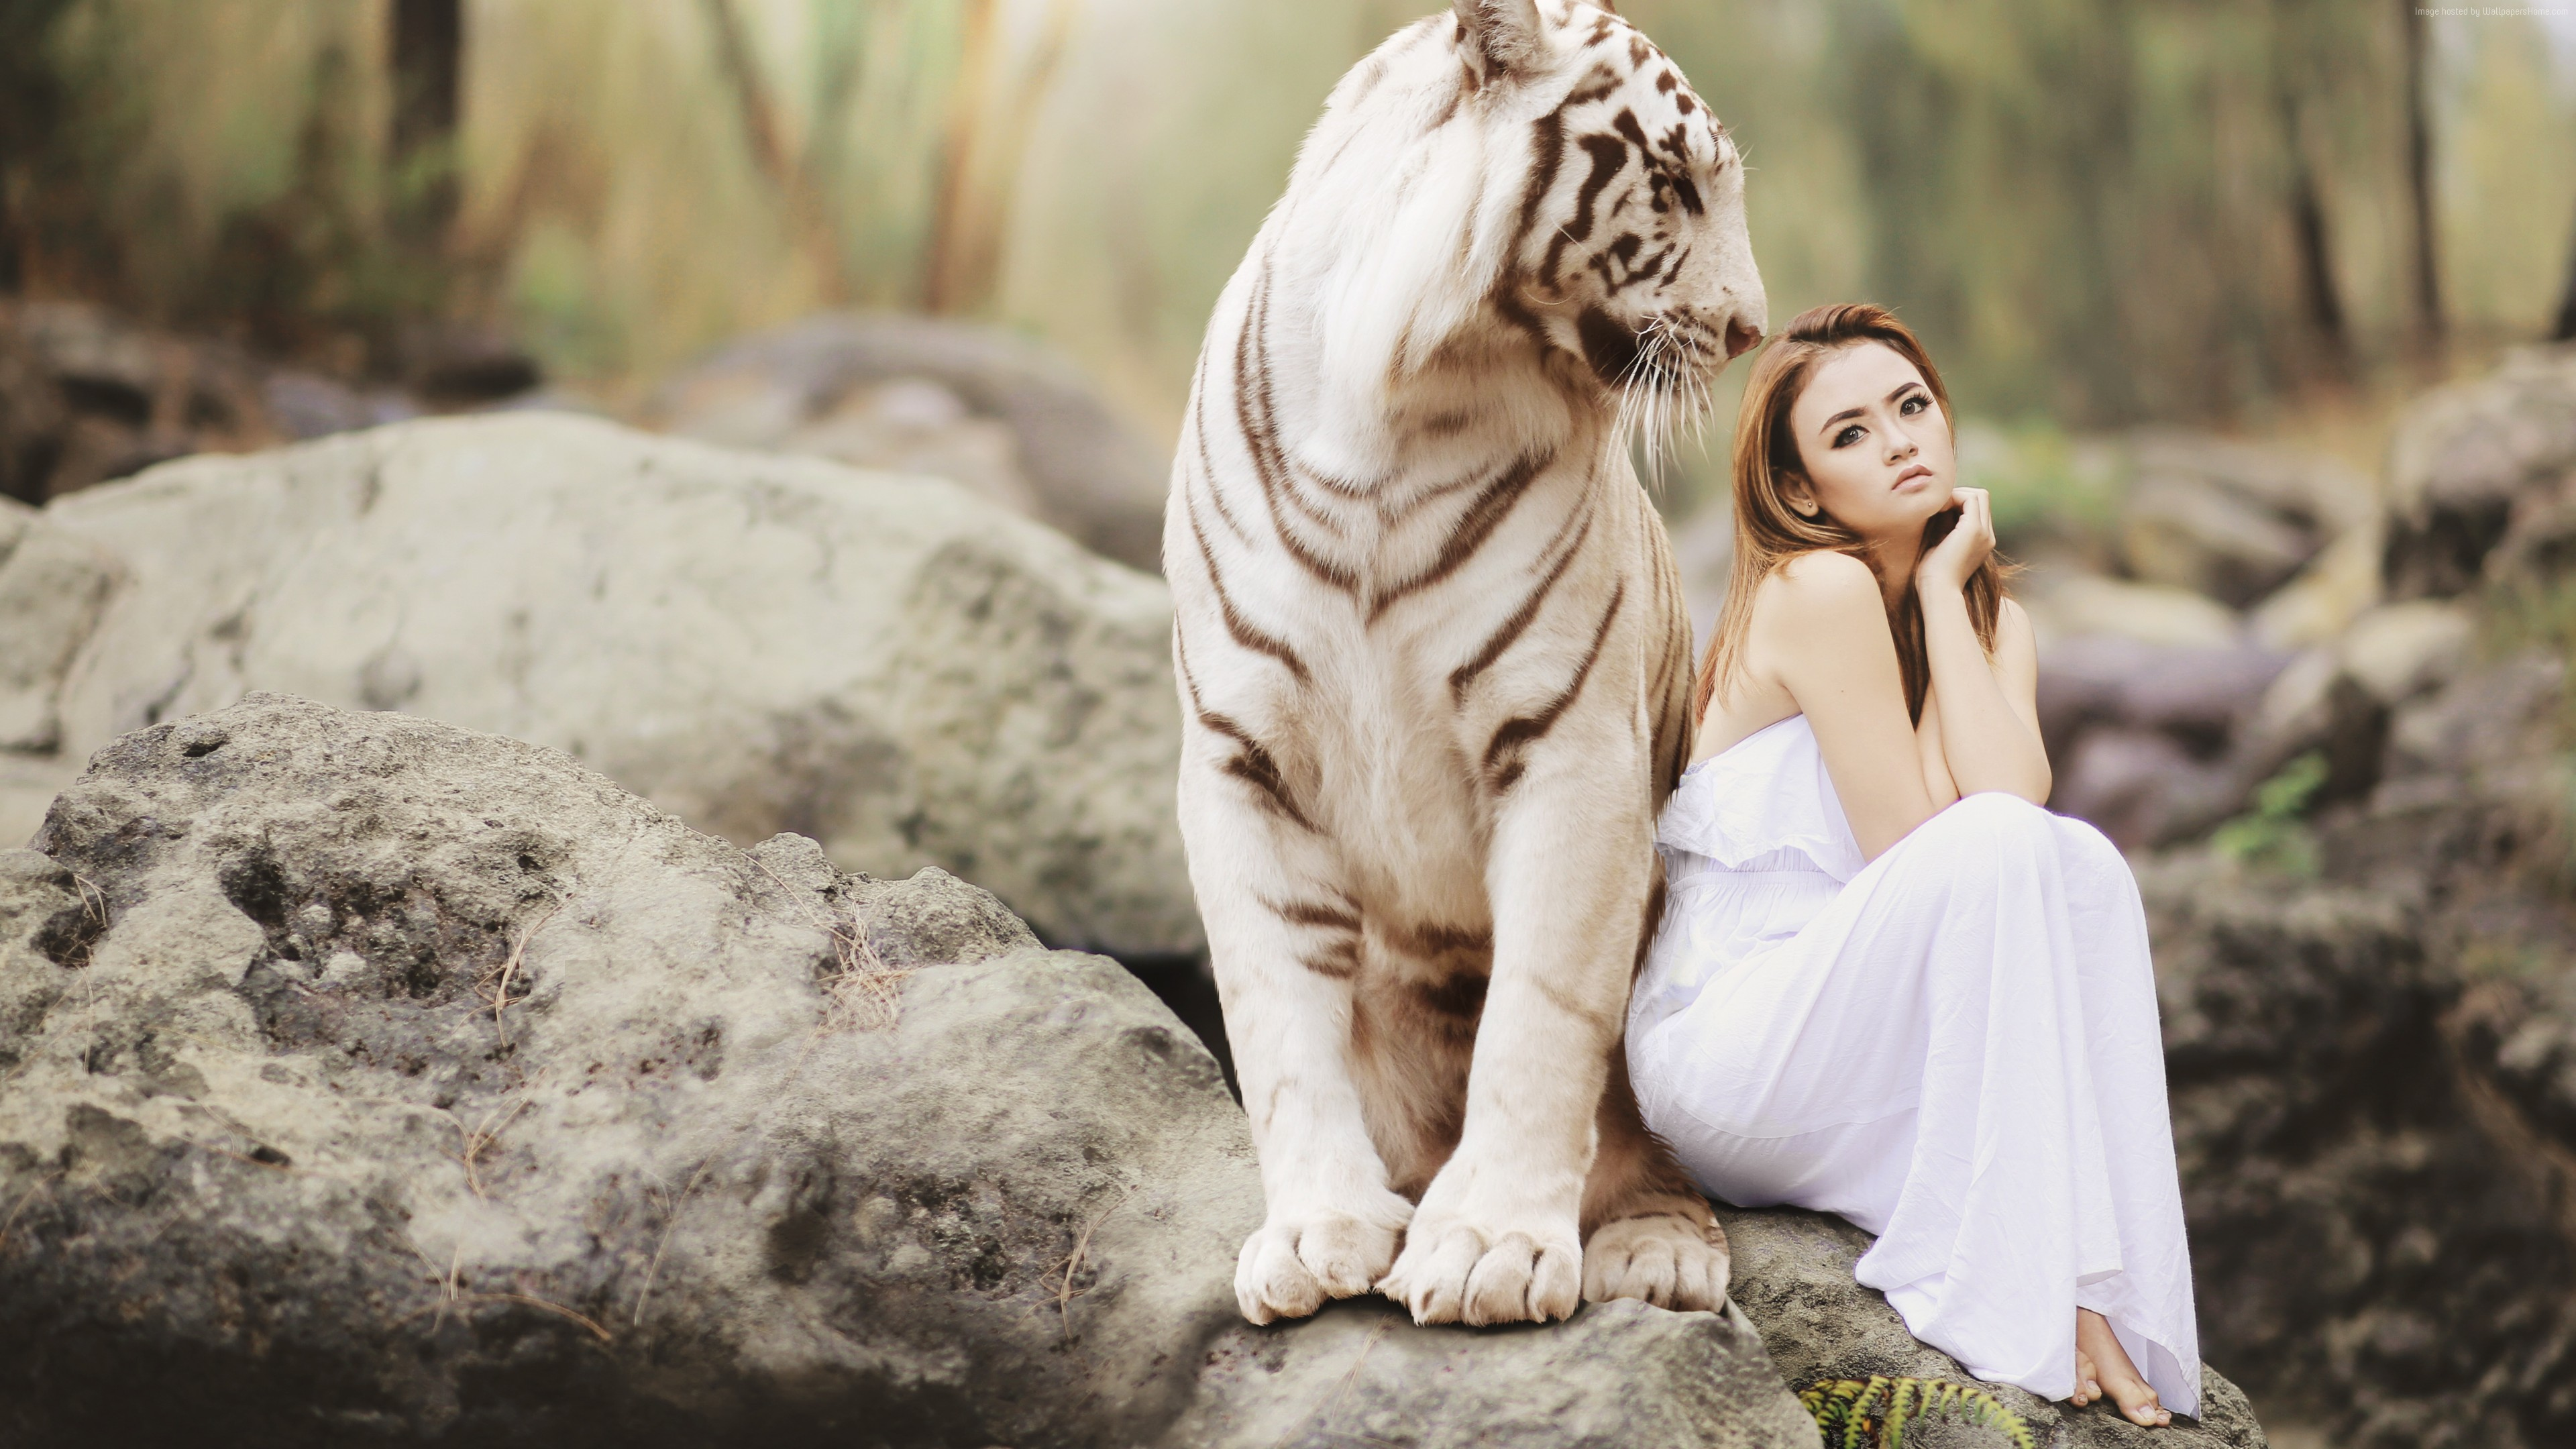 Wallpaper Girl, White Tiger, 5K, Girls